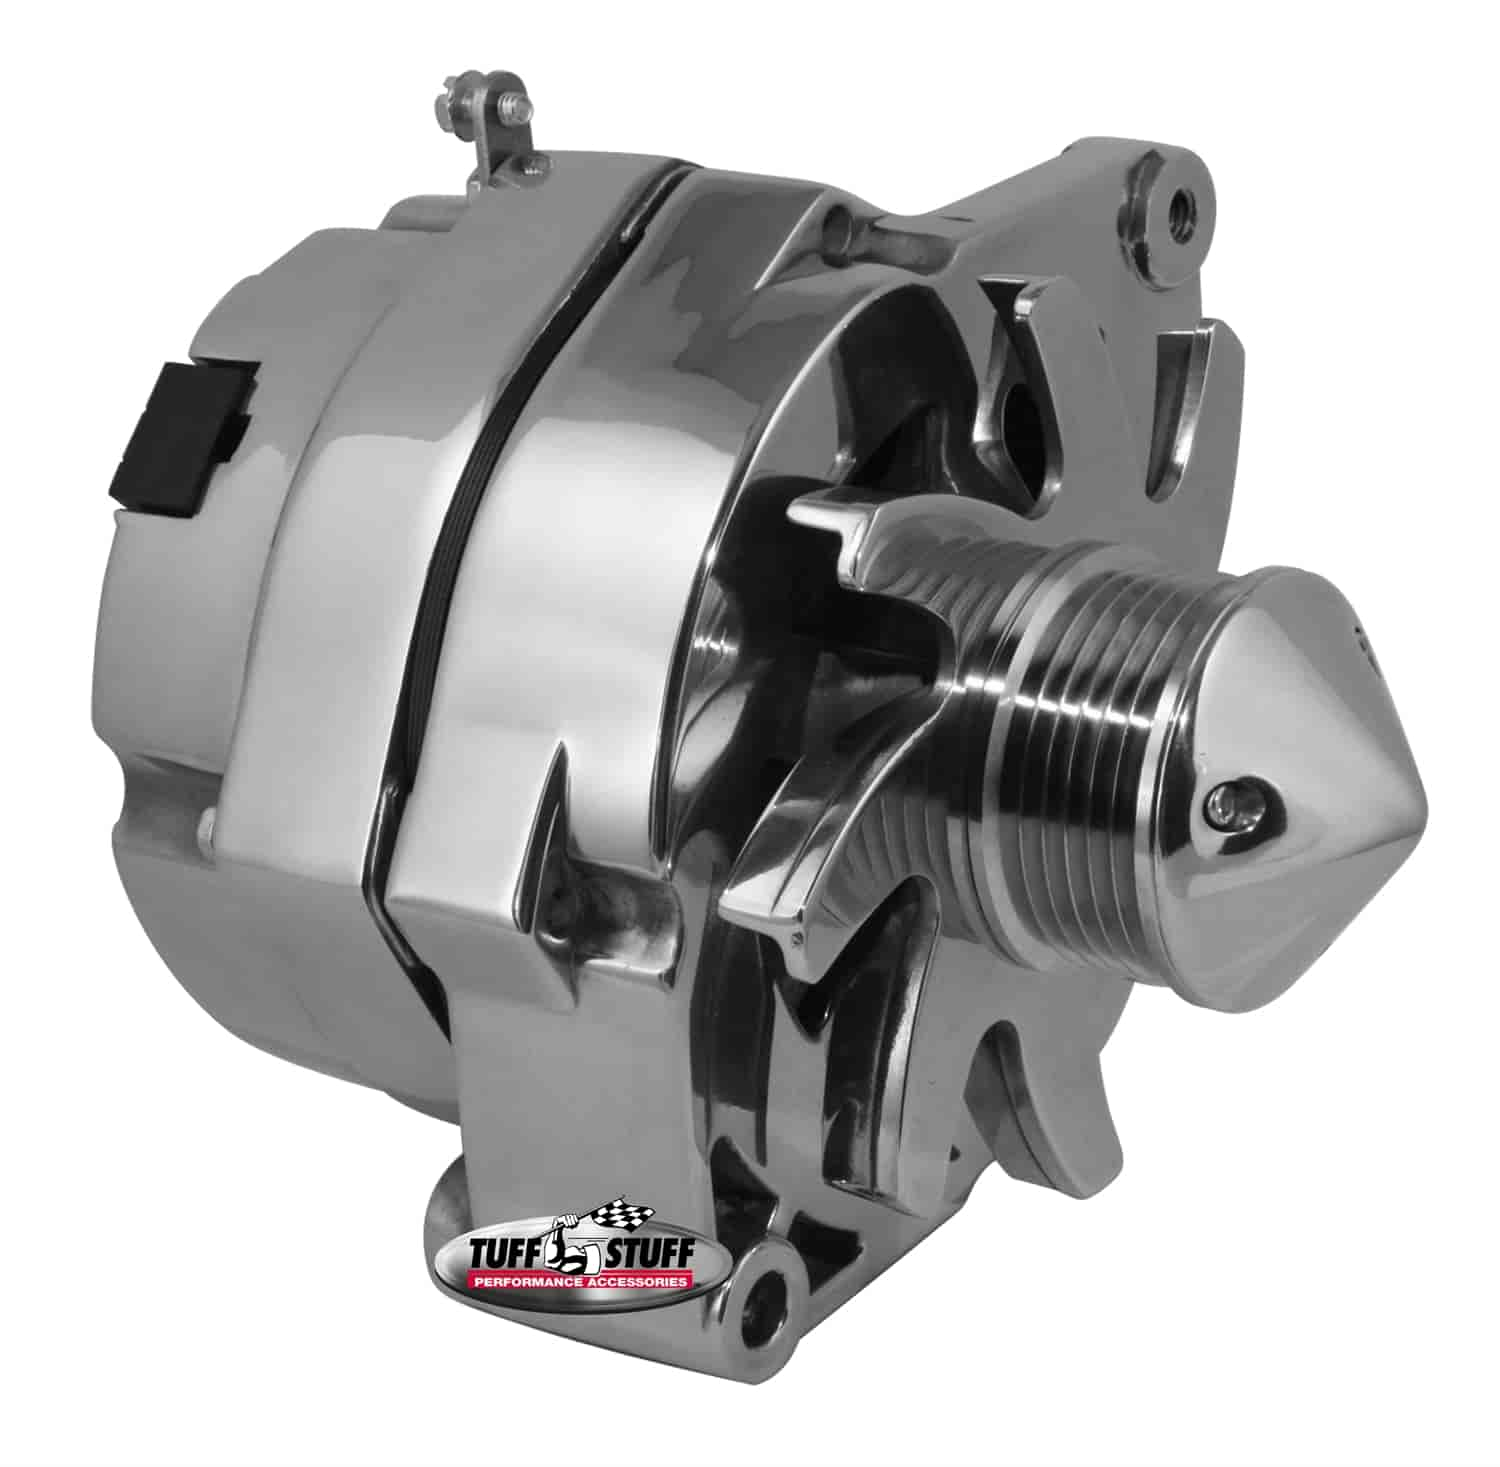 Tuff Stuff 7140ABULL6G - Tuff Stuff Chrome Alternators